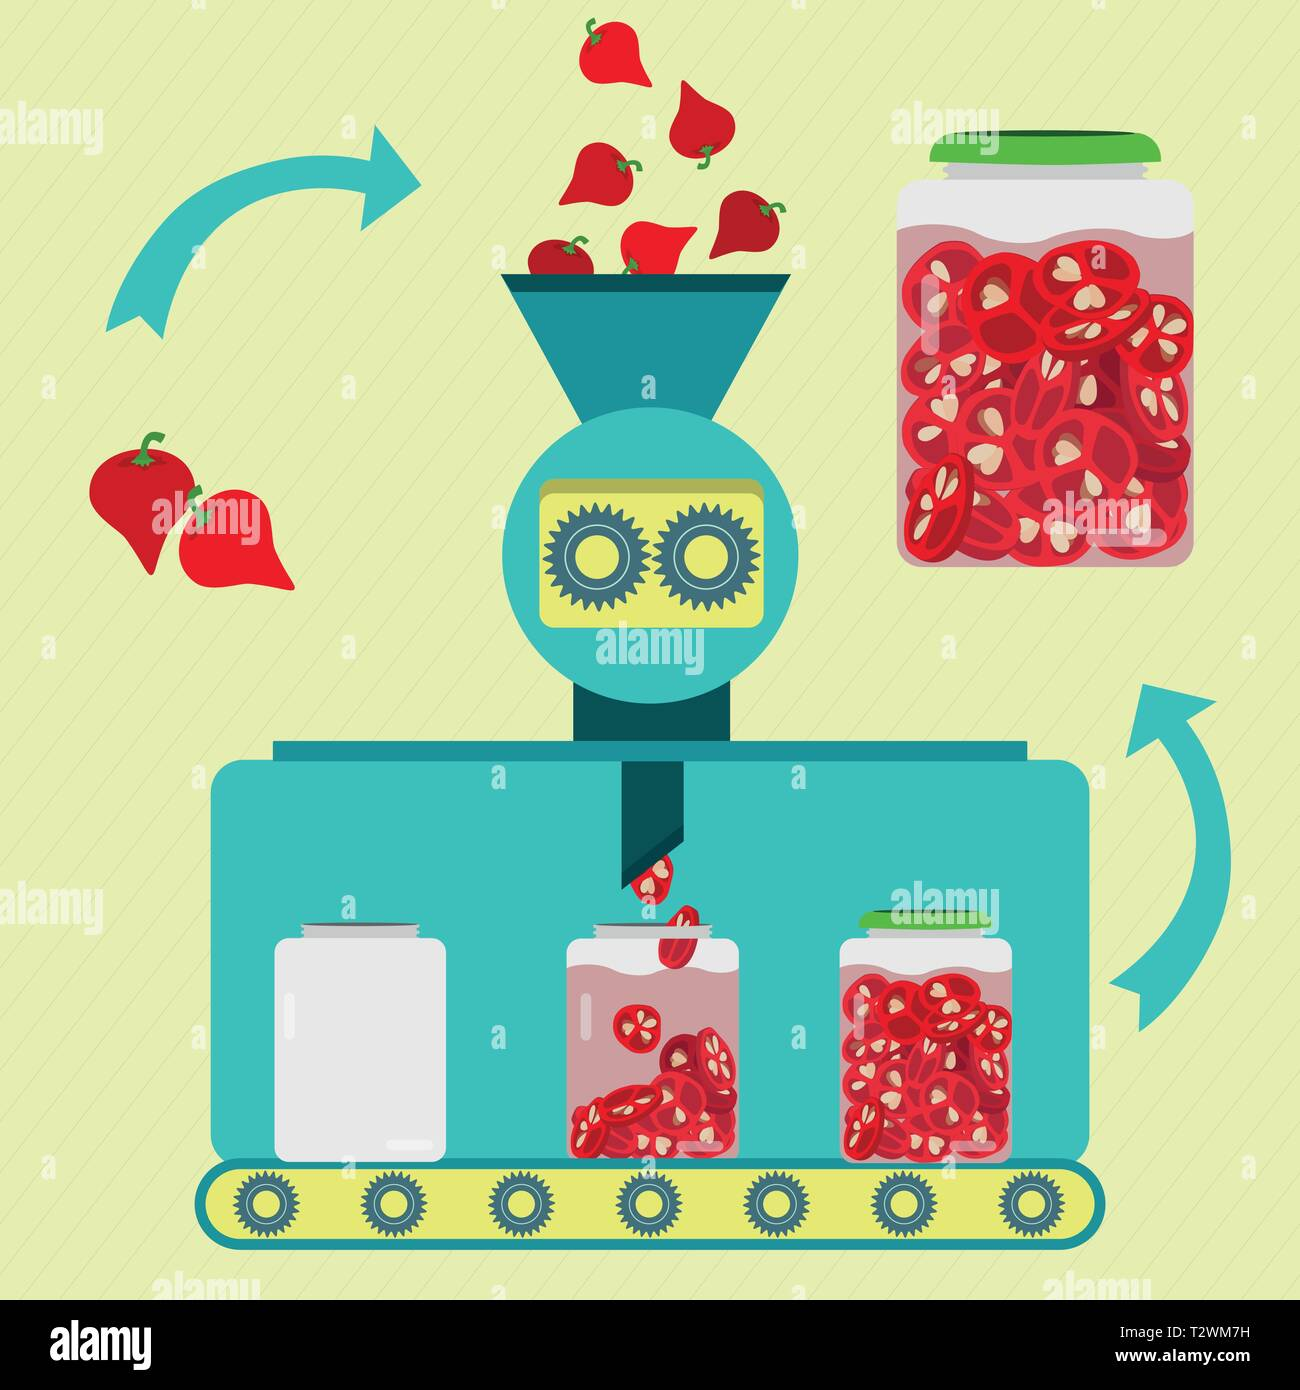 Pickles series production. Fresh pepper pout being processed and sliced. Bottled pickled sliced pepper pout. - Stock Vector